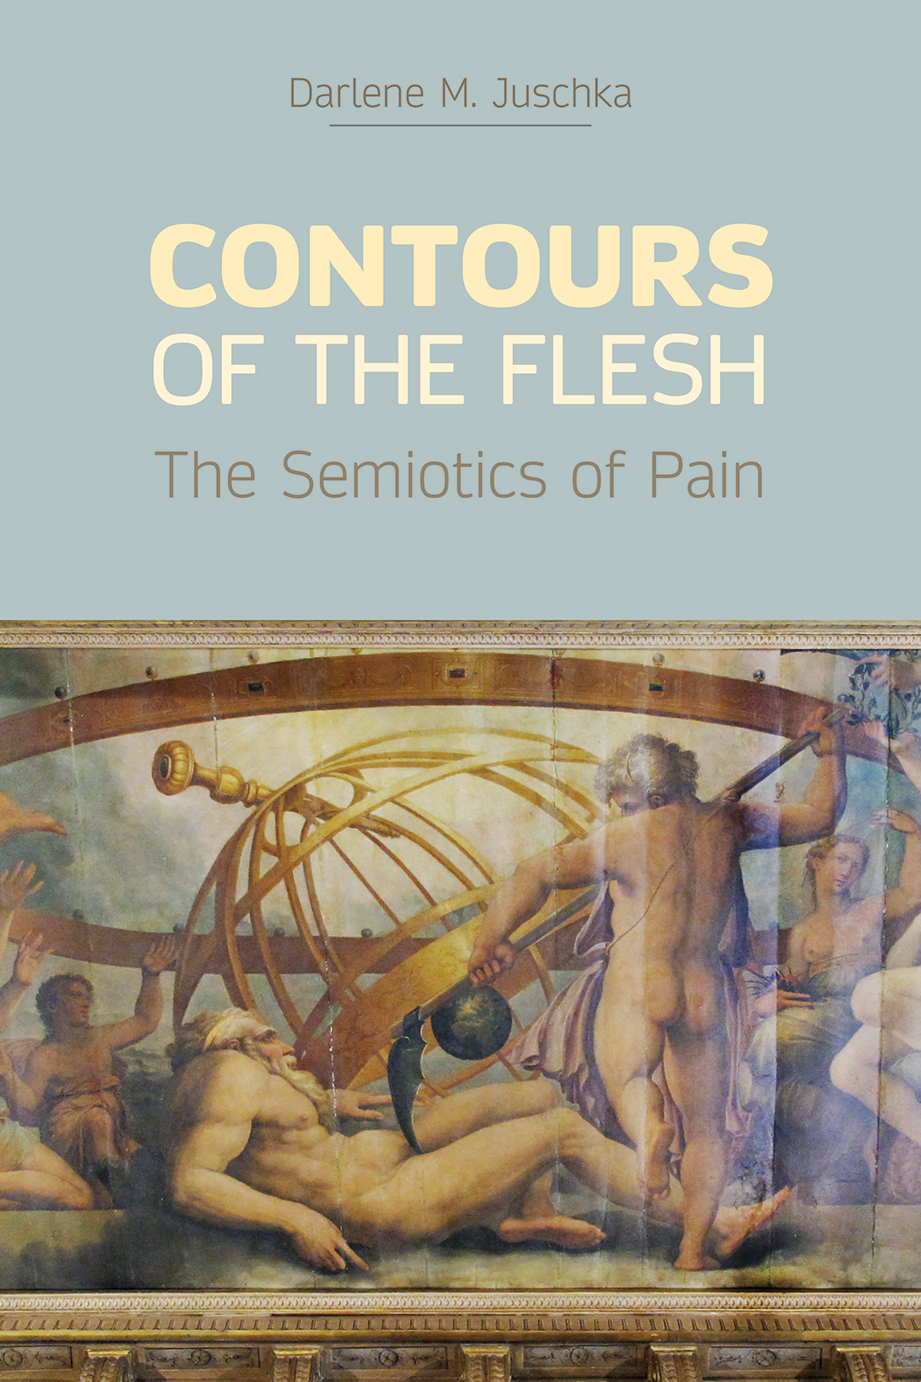 Contours of the Flesh - The Semiotics of Pain - Darlene M. Juschka